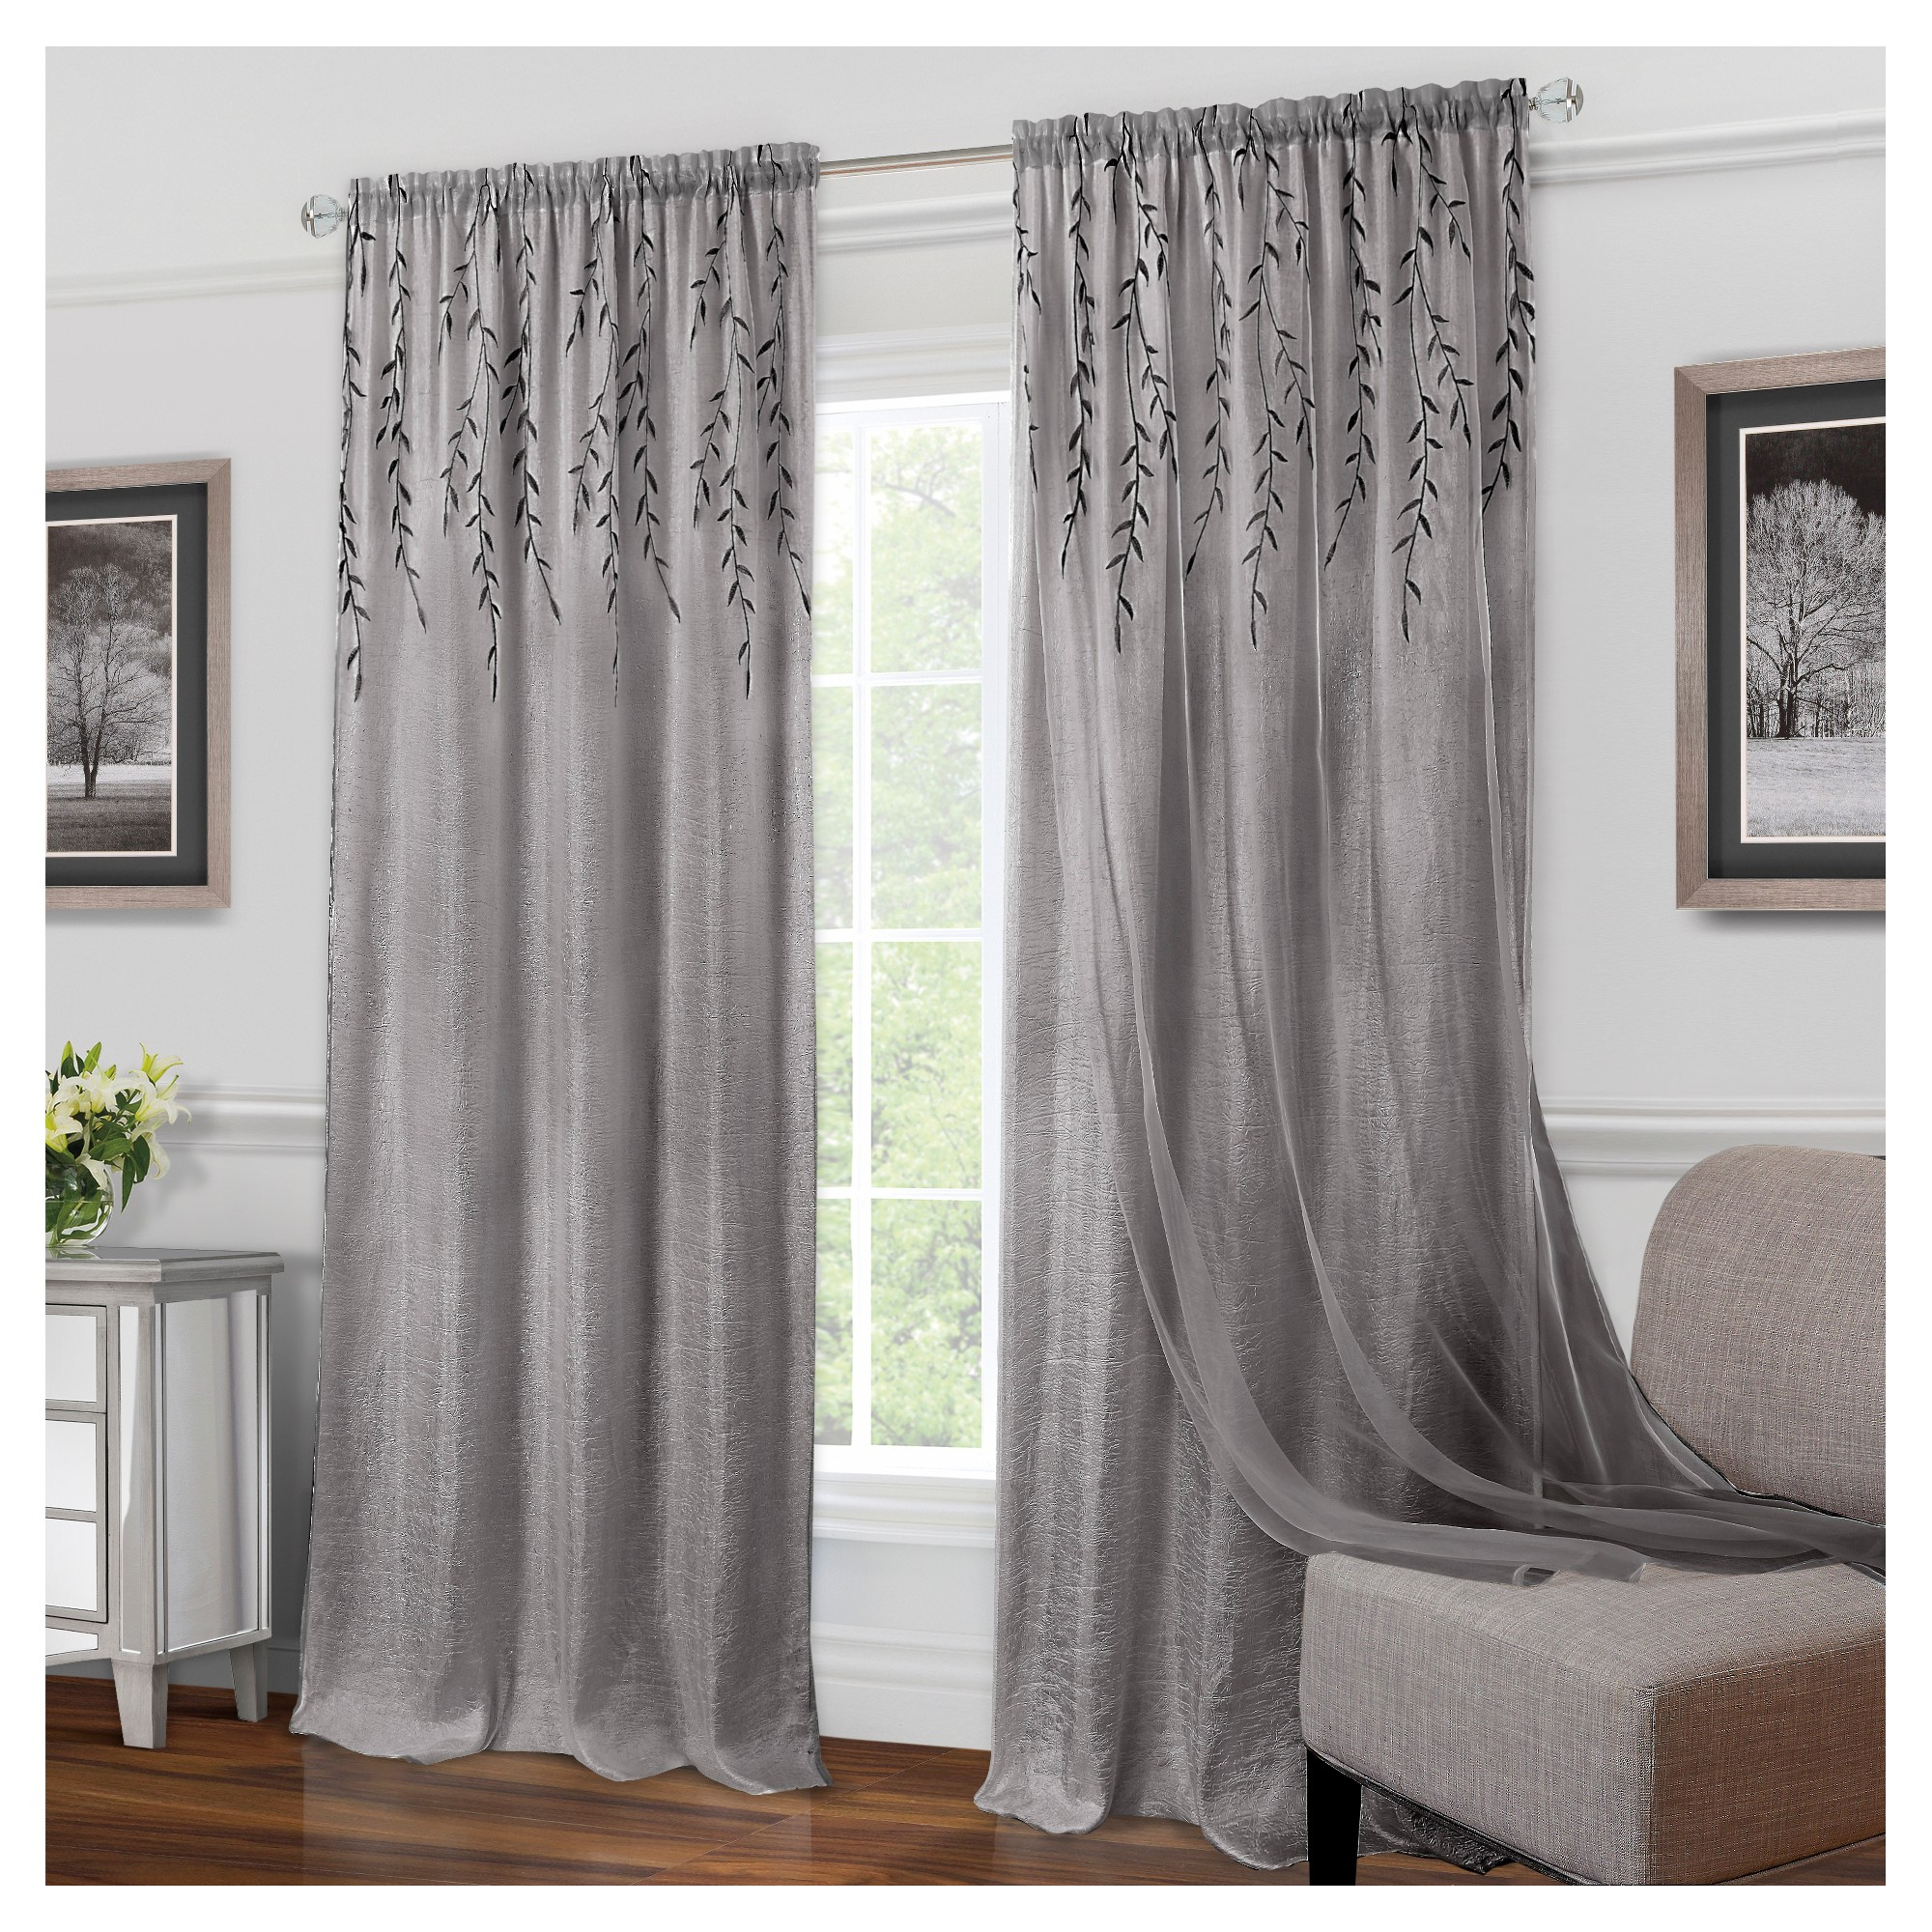 """Willow Rod Pocket Window Curtain Panel White (42""""x63 Throughout Well Liked Willow Rod Pocket Window Curtain Panels (View 4 of 20)"""